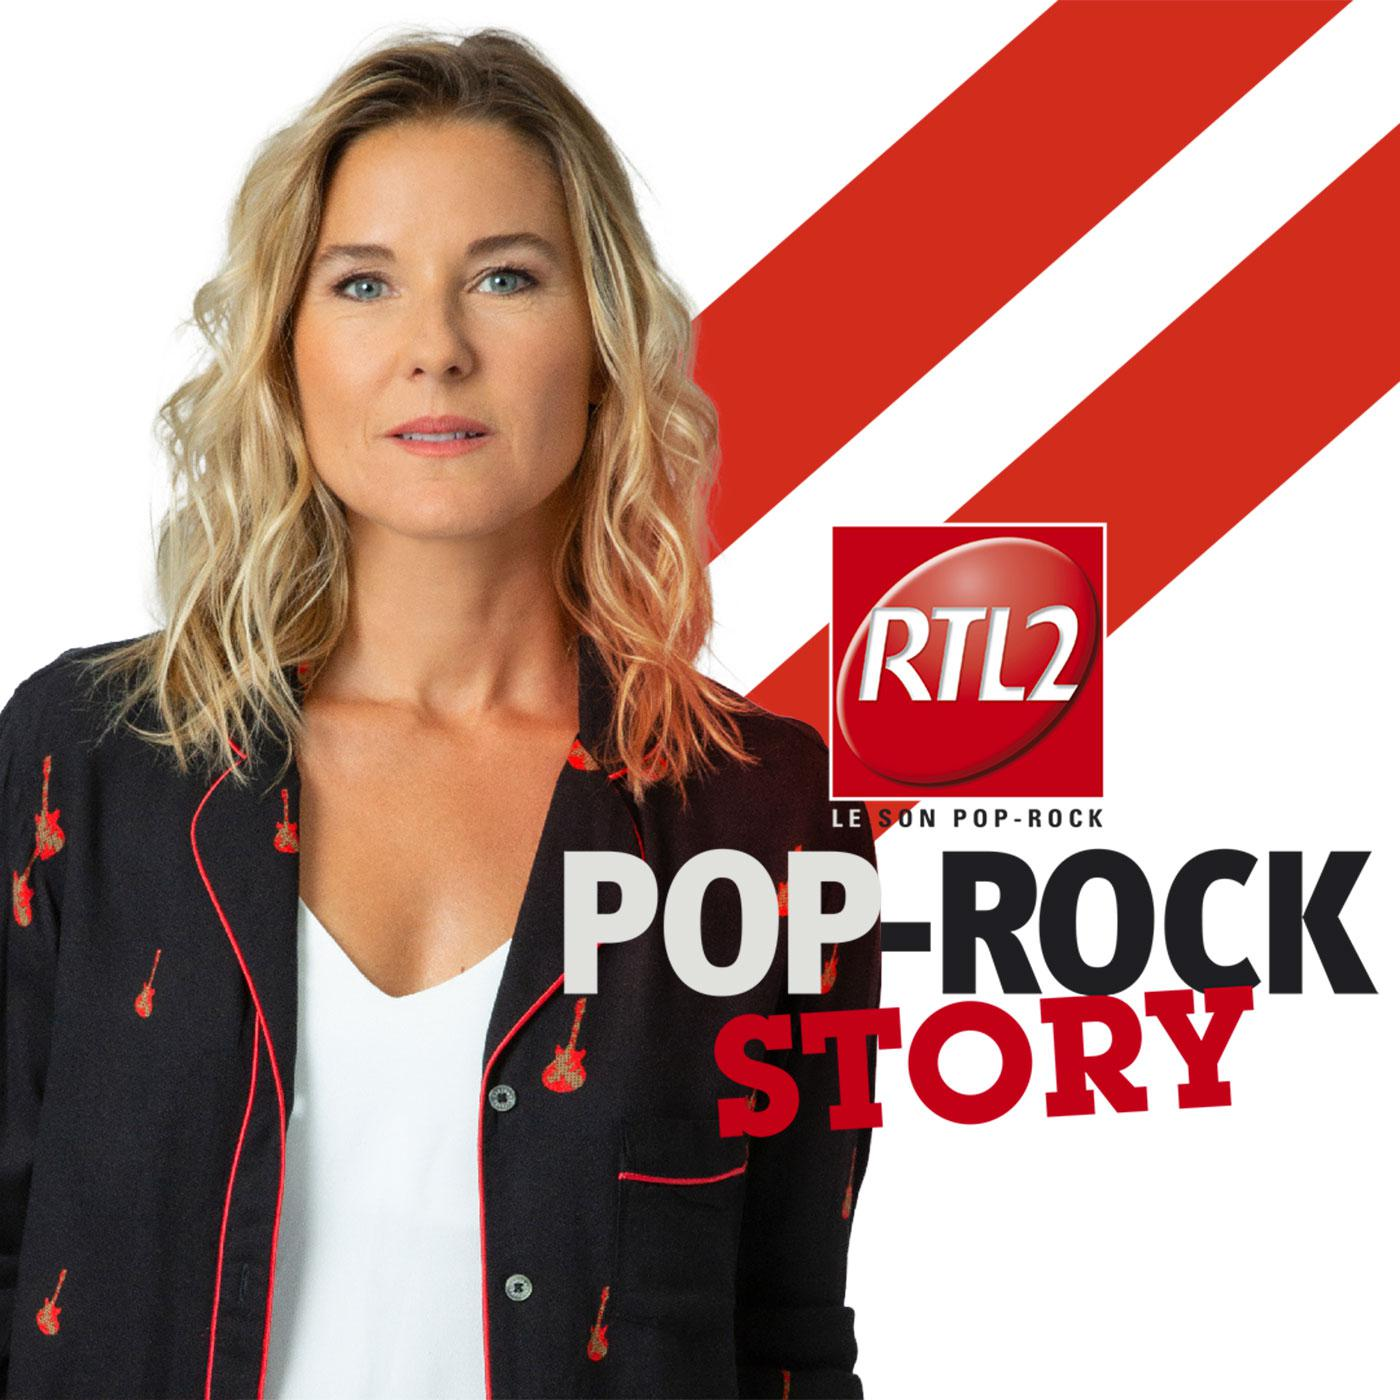 Rtl2 Email